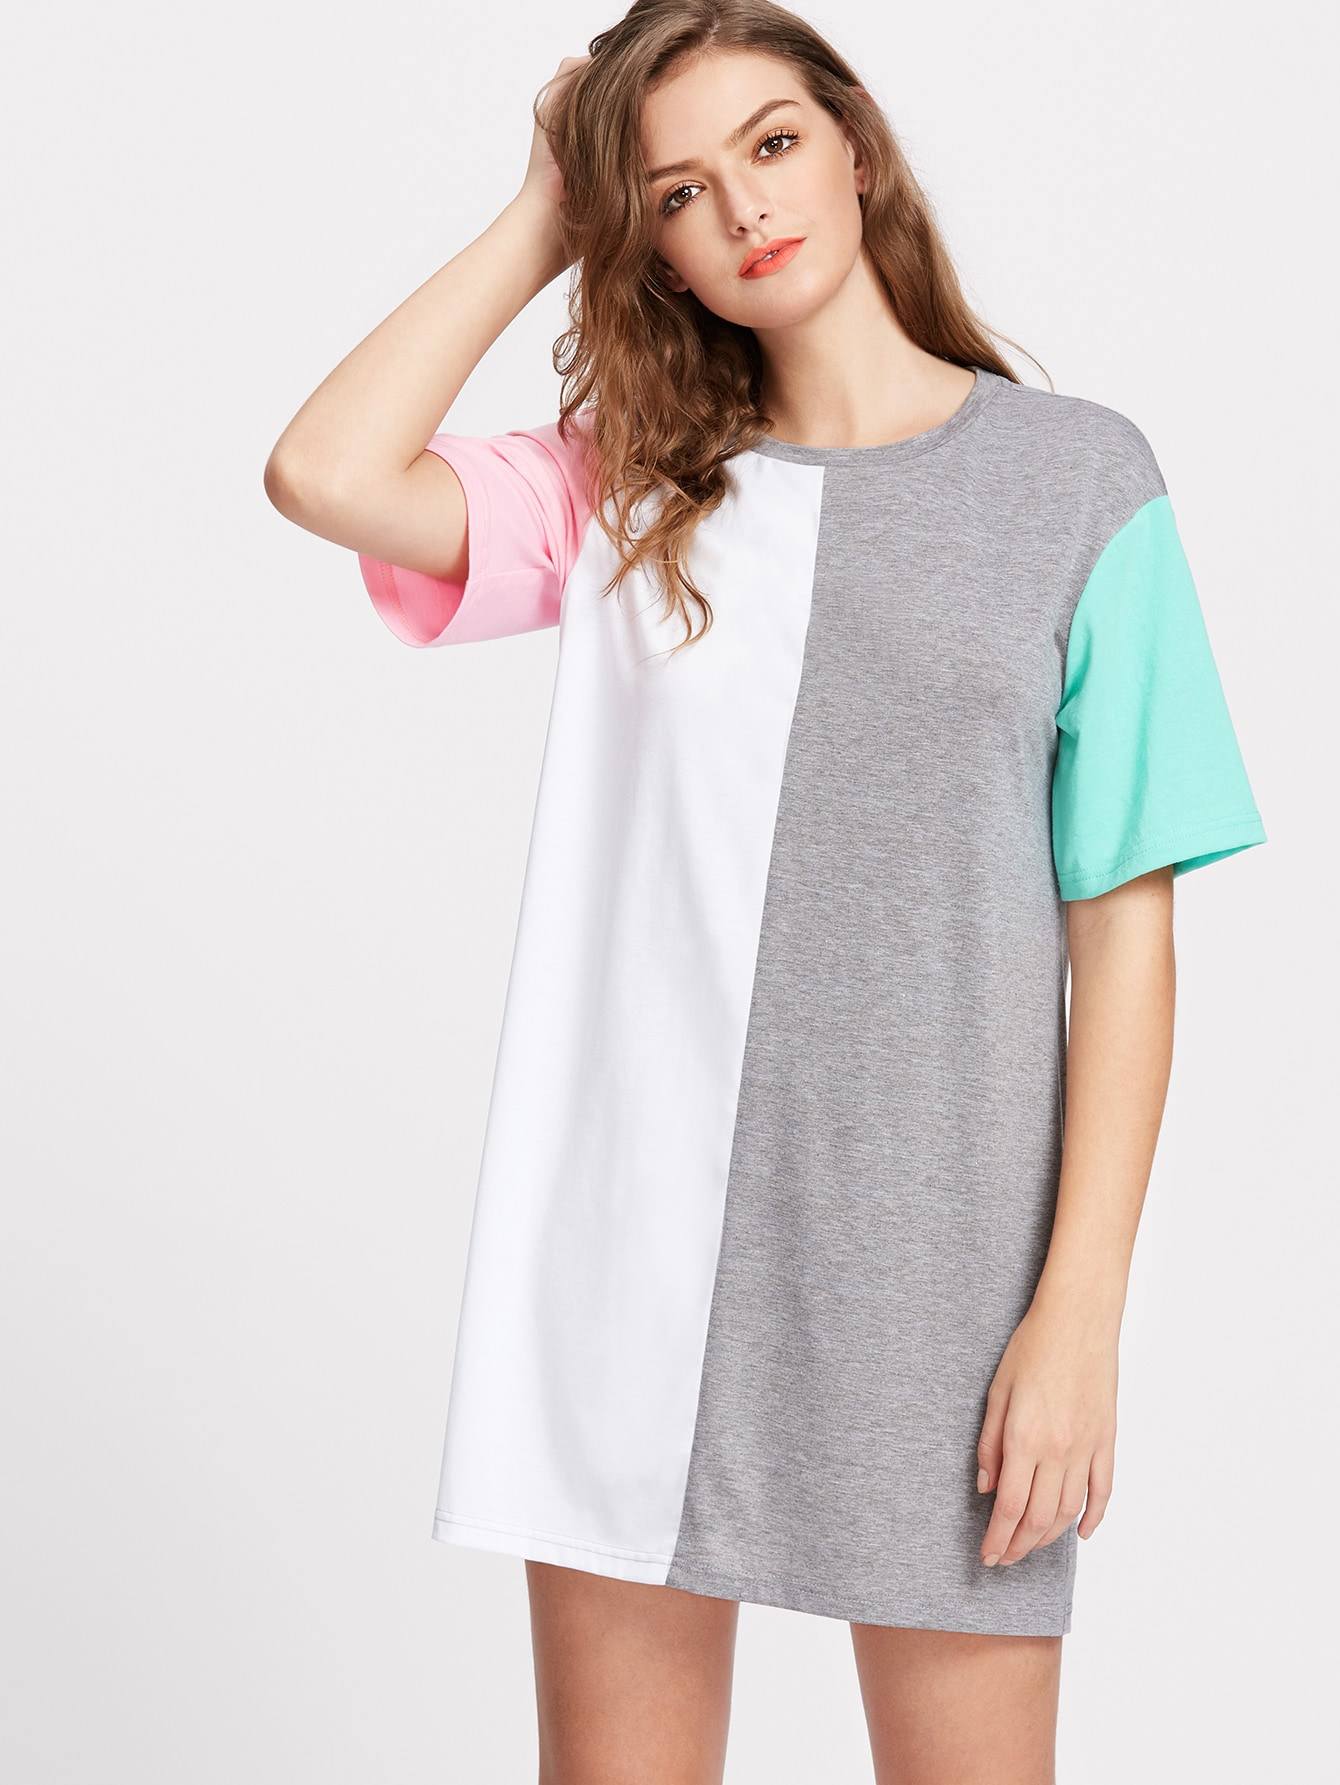 Color Block Cut And Sew Tee Dress cut and sew cami dress